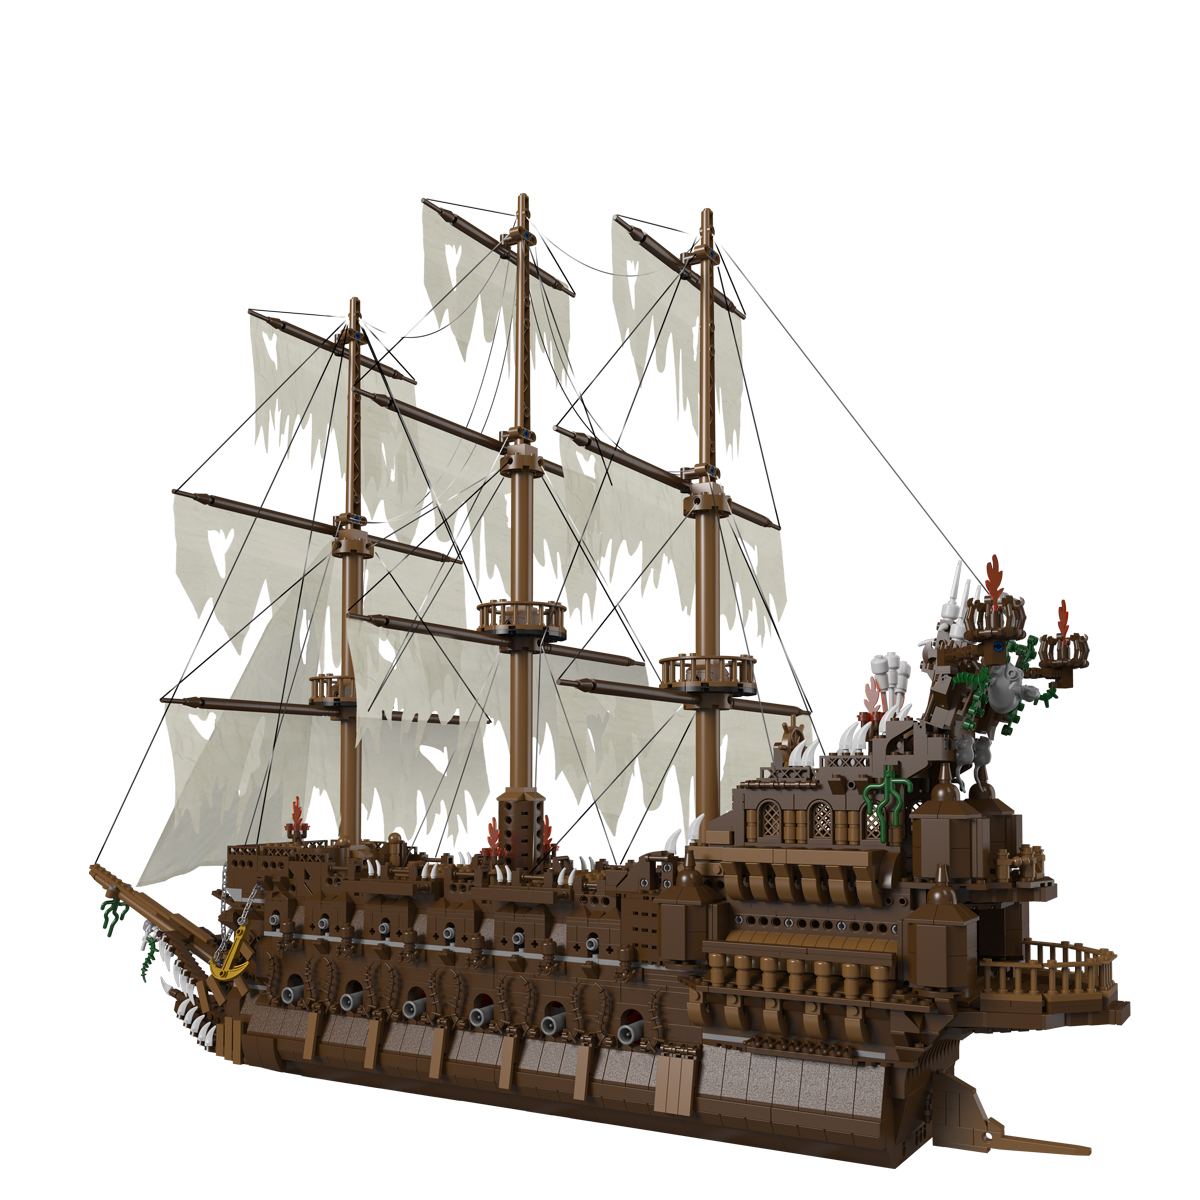 LEPIN 16016 3652pcs Movies Serices MOC Flying the Netherlands Model ship Building Blocks Bricks toys for Children Gift 8 in 1 military ship building blocks toys for boys